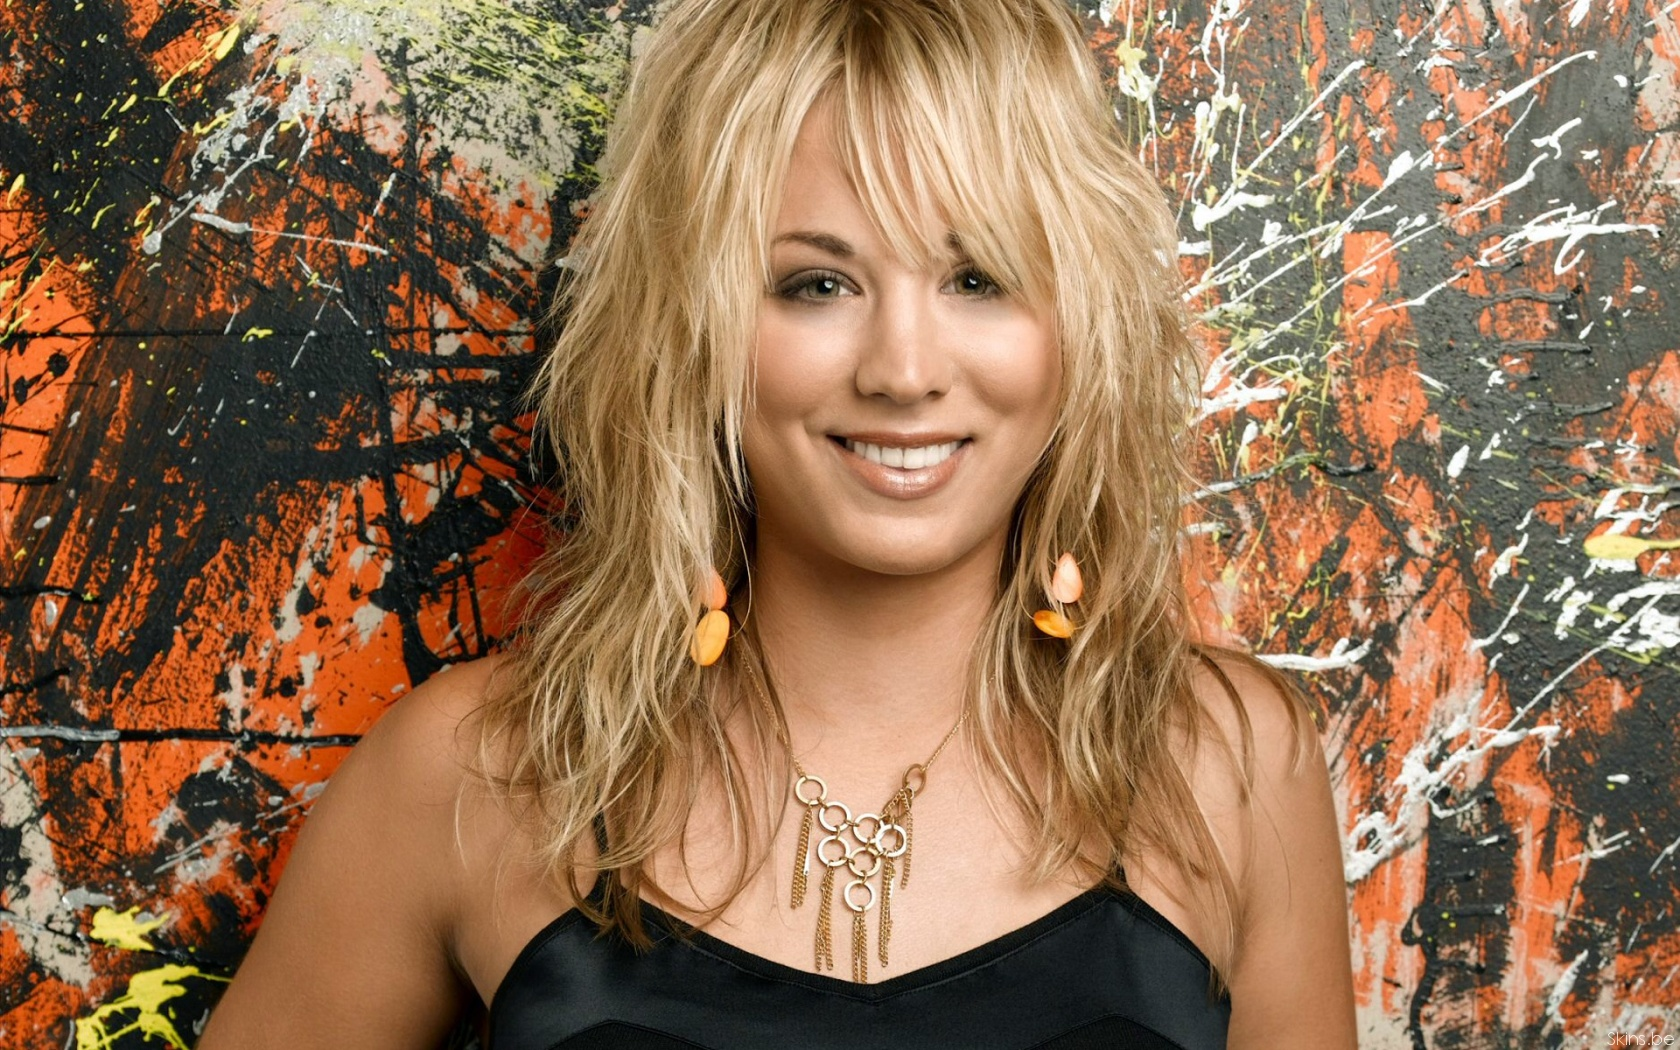 Kaley Cuoco desktop wallpaper download in widescreen hd 31569 1680x1050